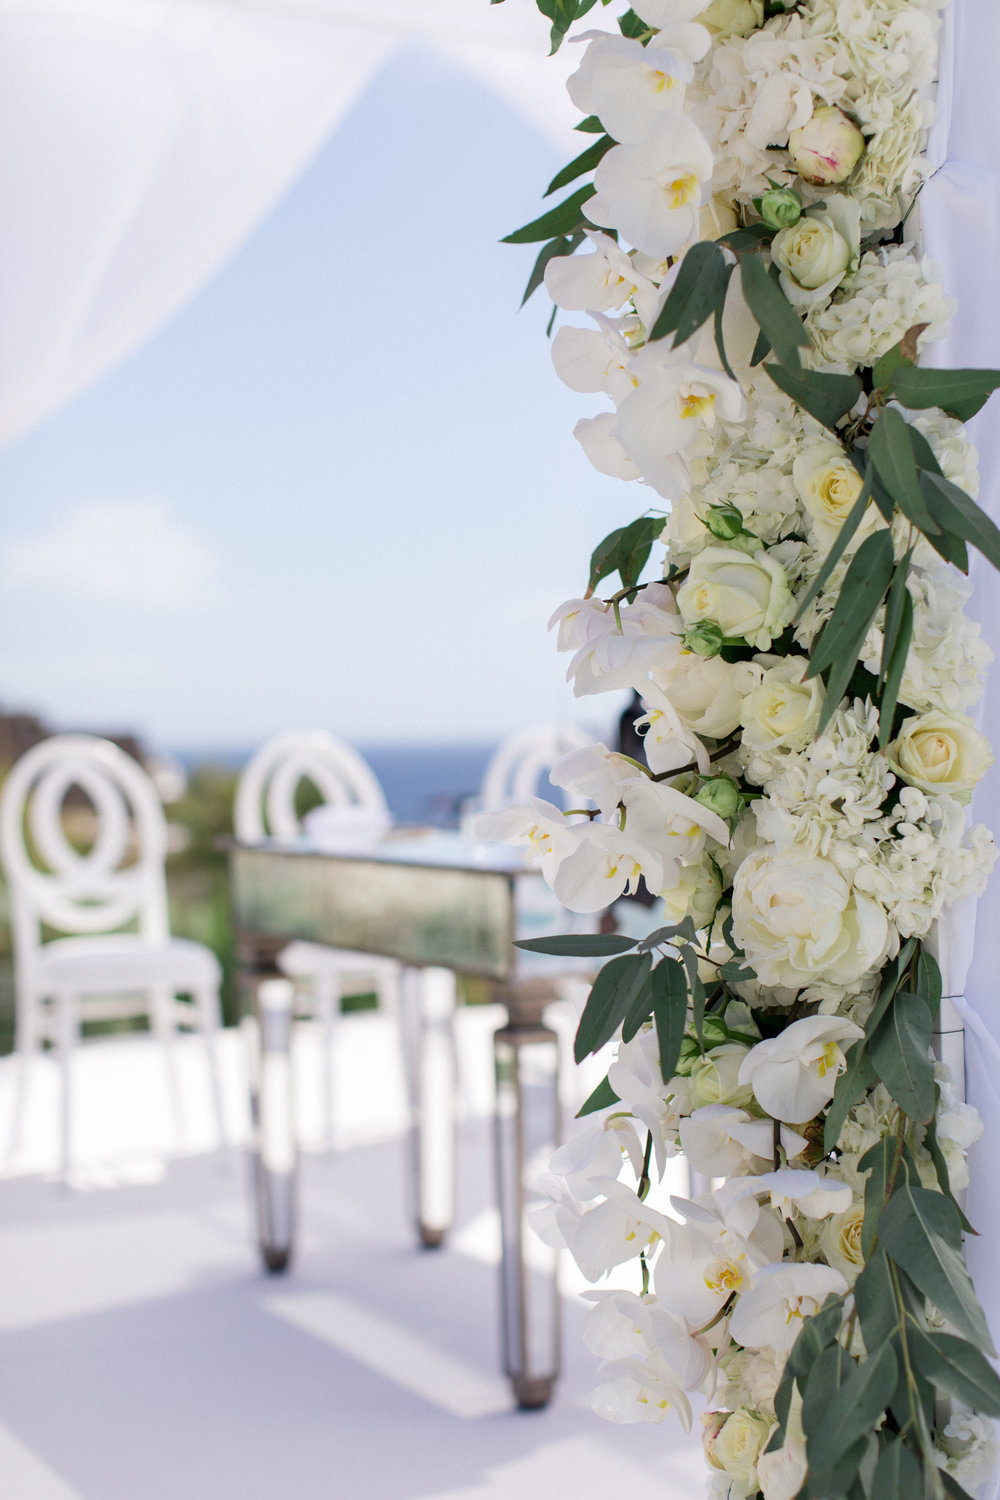 royal-myconian-resort-venue-galaxy-sunset-chuppah-chuppa-huppah-bridal-canopy-jewish-ceremony-floral-decoration-mirror-table-couple-bride-groom-event-planning-silkentile-greece